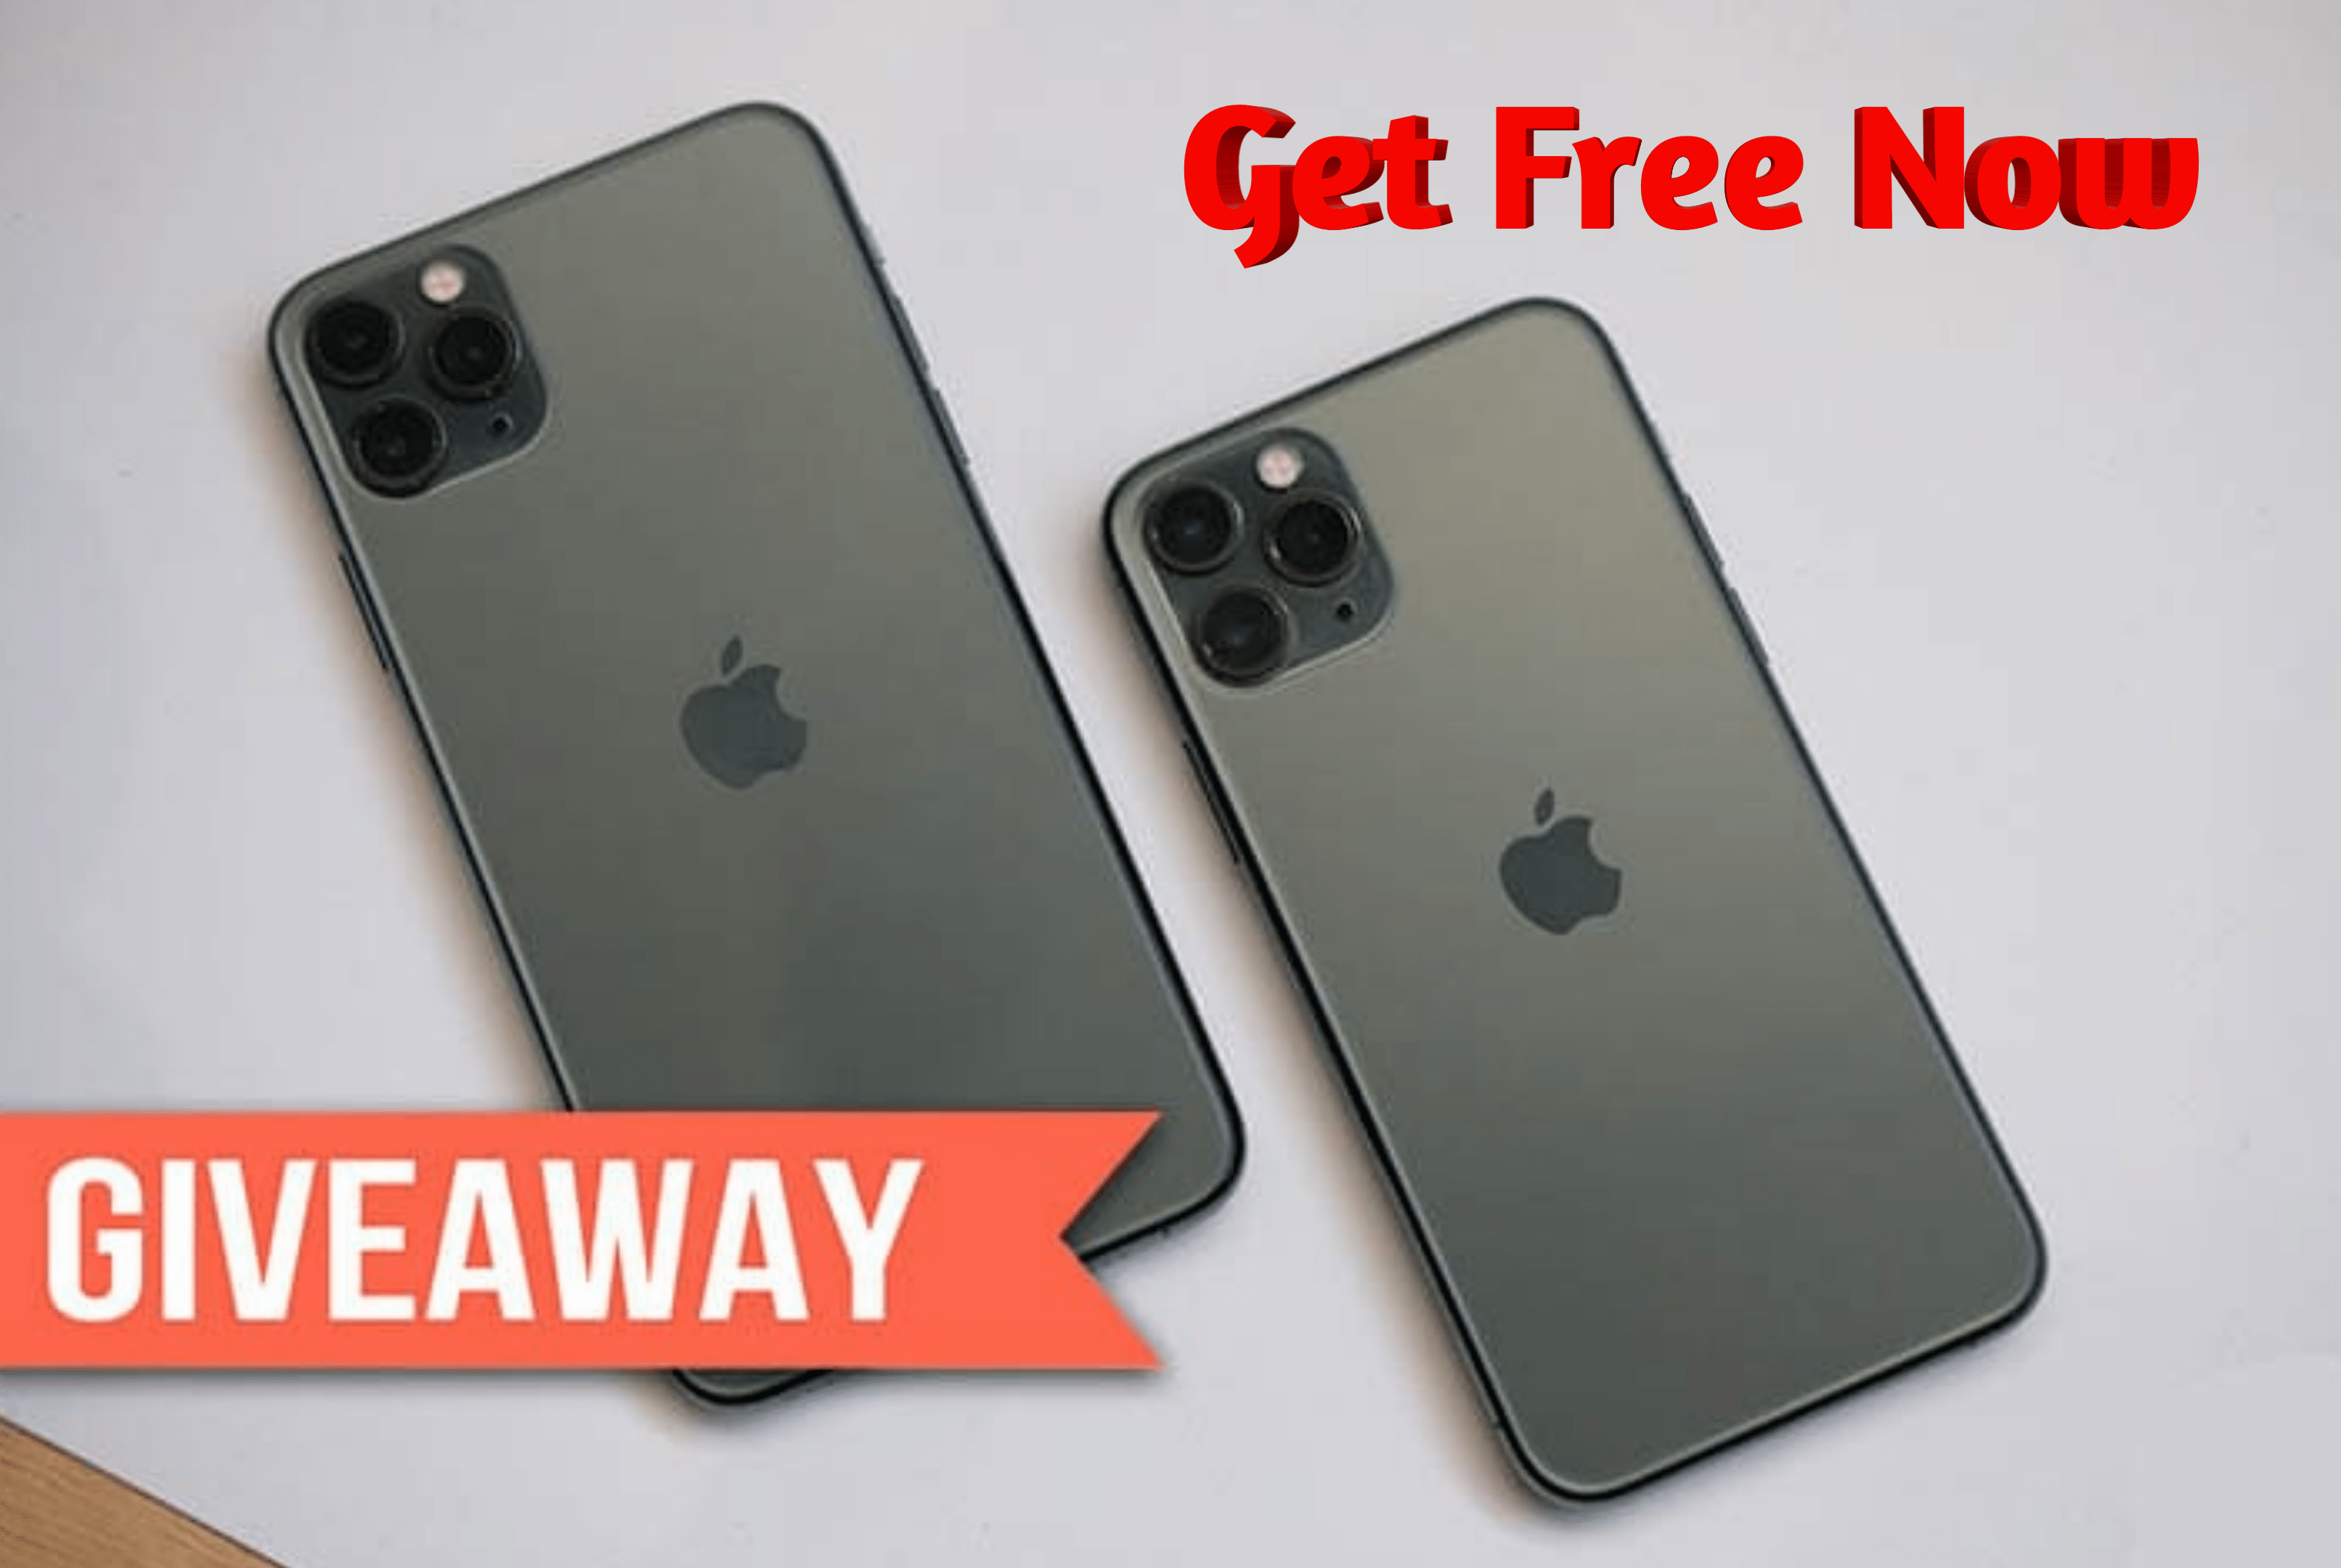 Get Free iPhone 11 And iPhone 11 Pro. Check Out Now